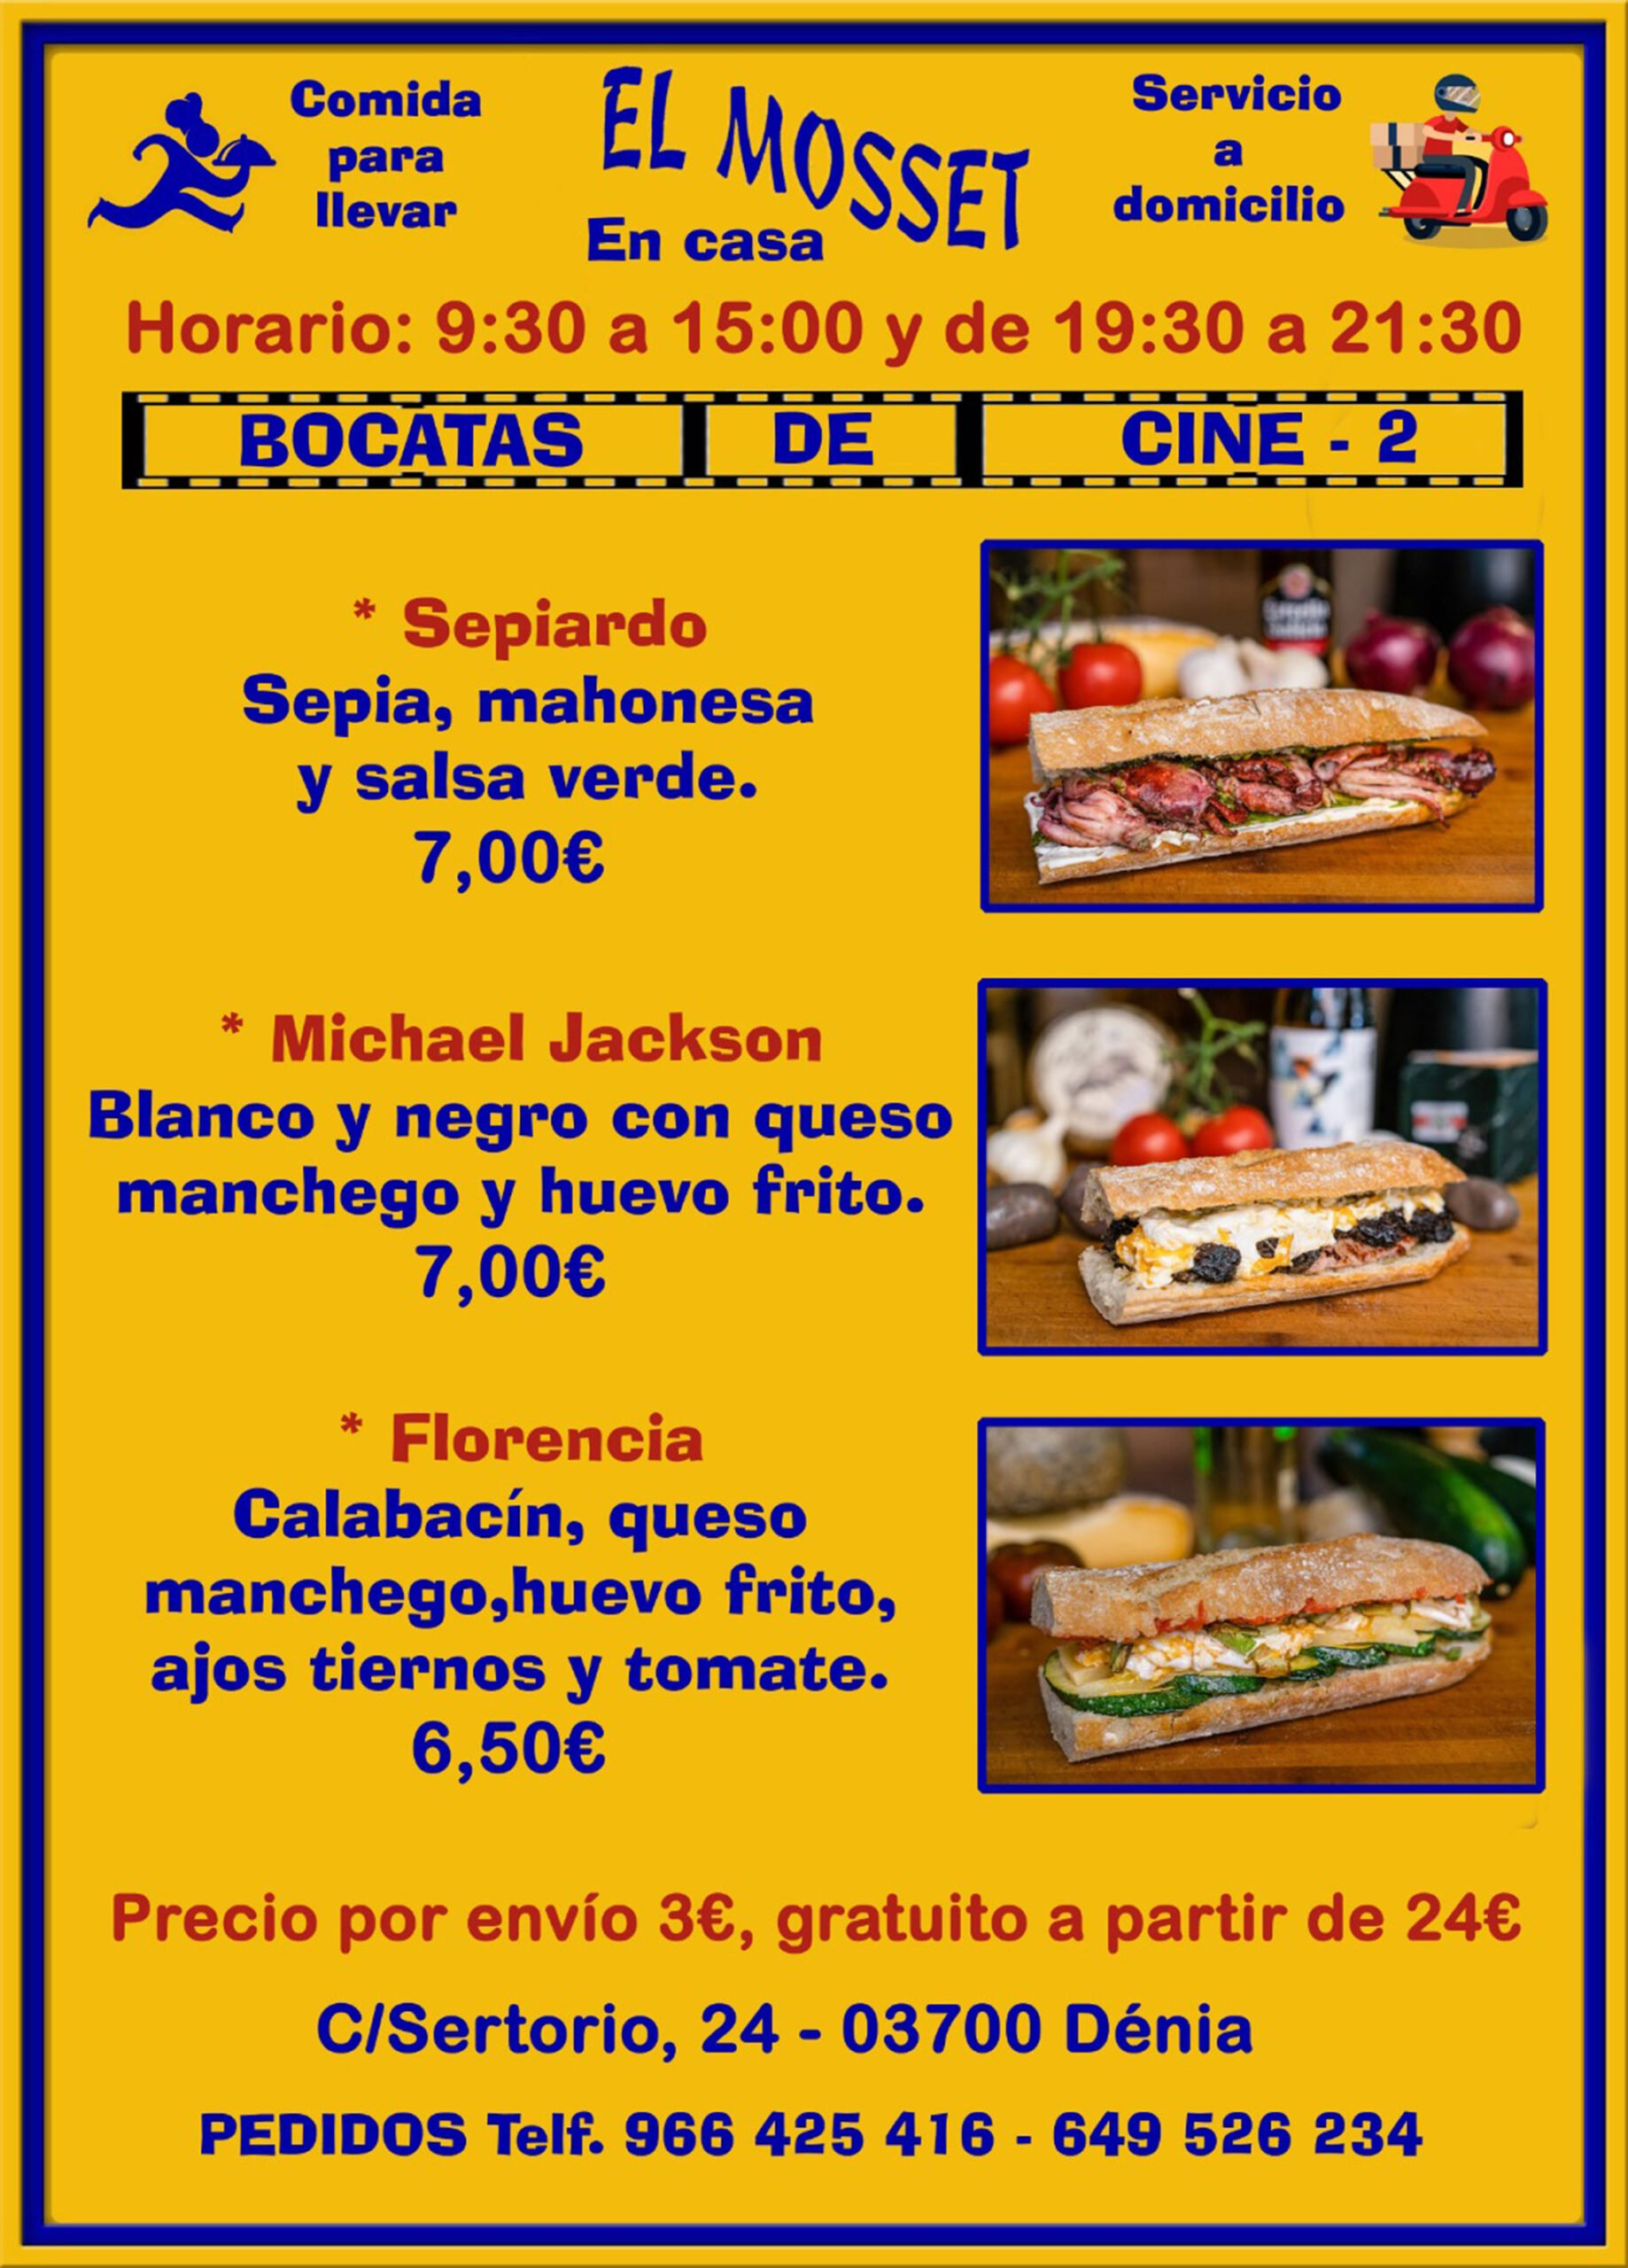 Sandwiches to take away and at home in Dénia (Cinema Sandwiches 2) - El Mosset